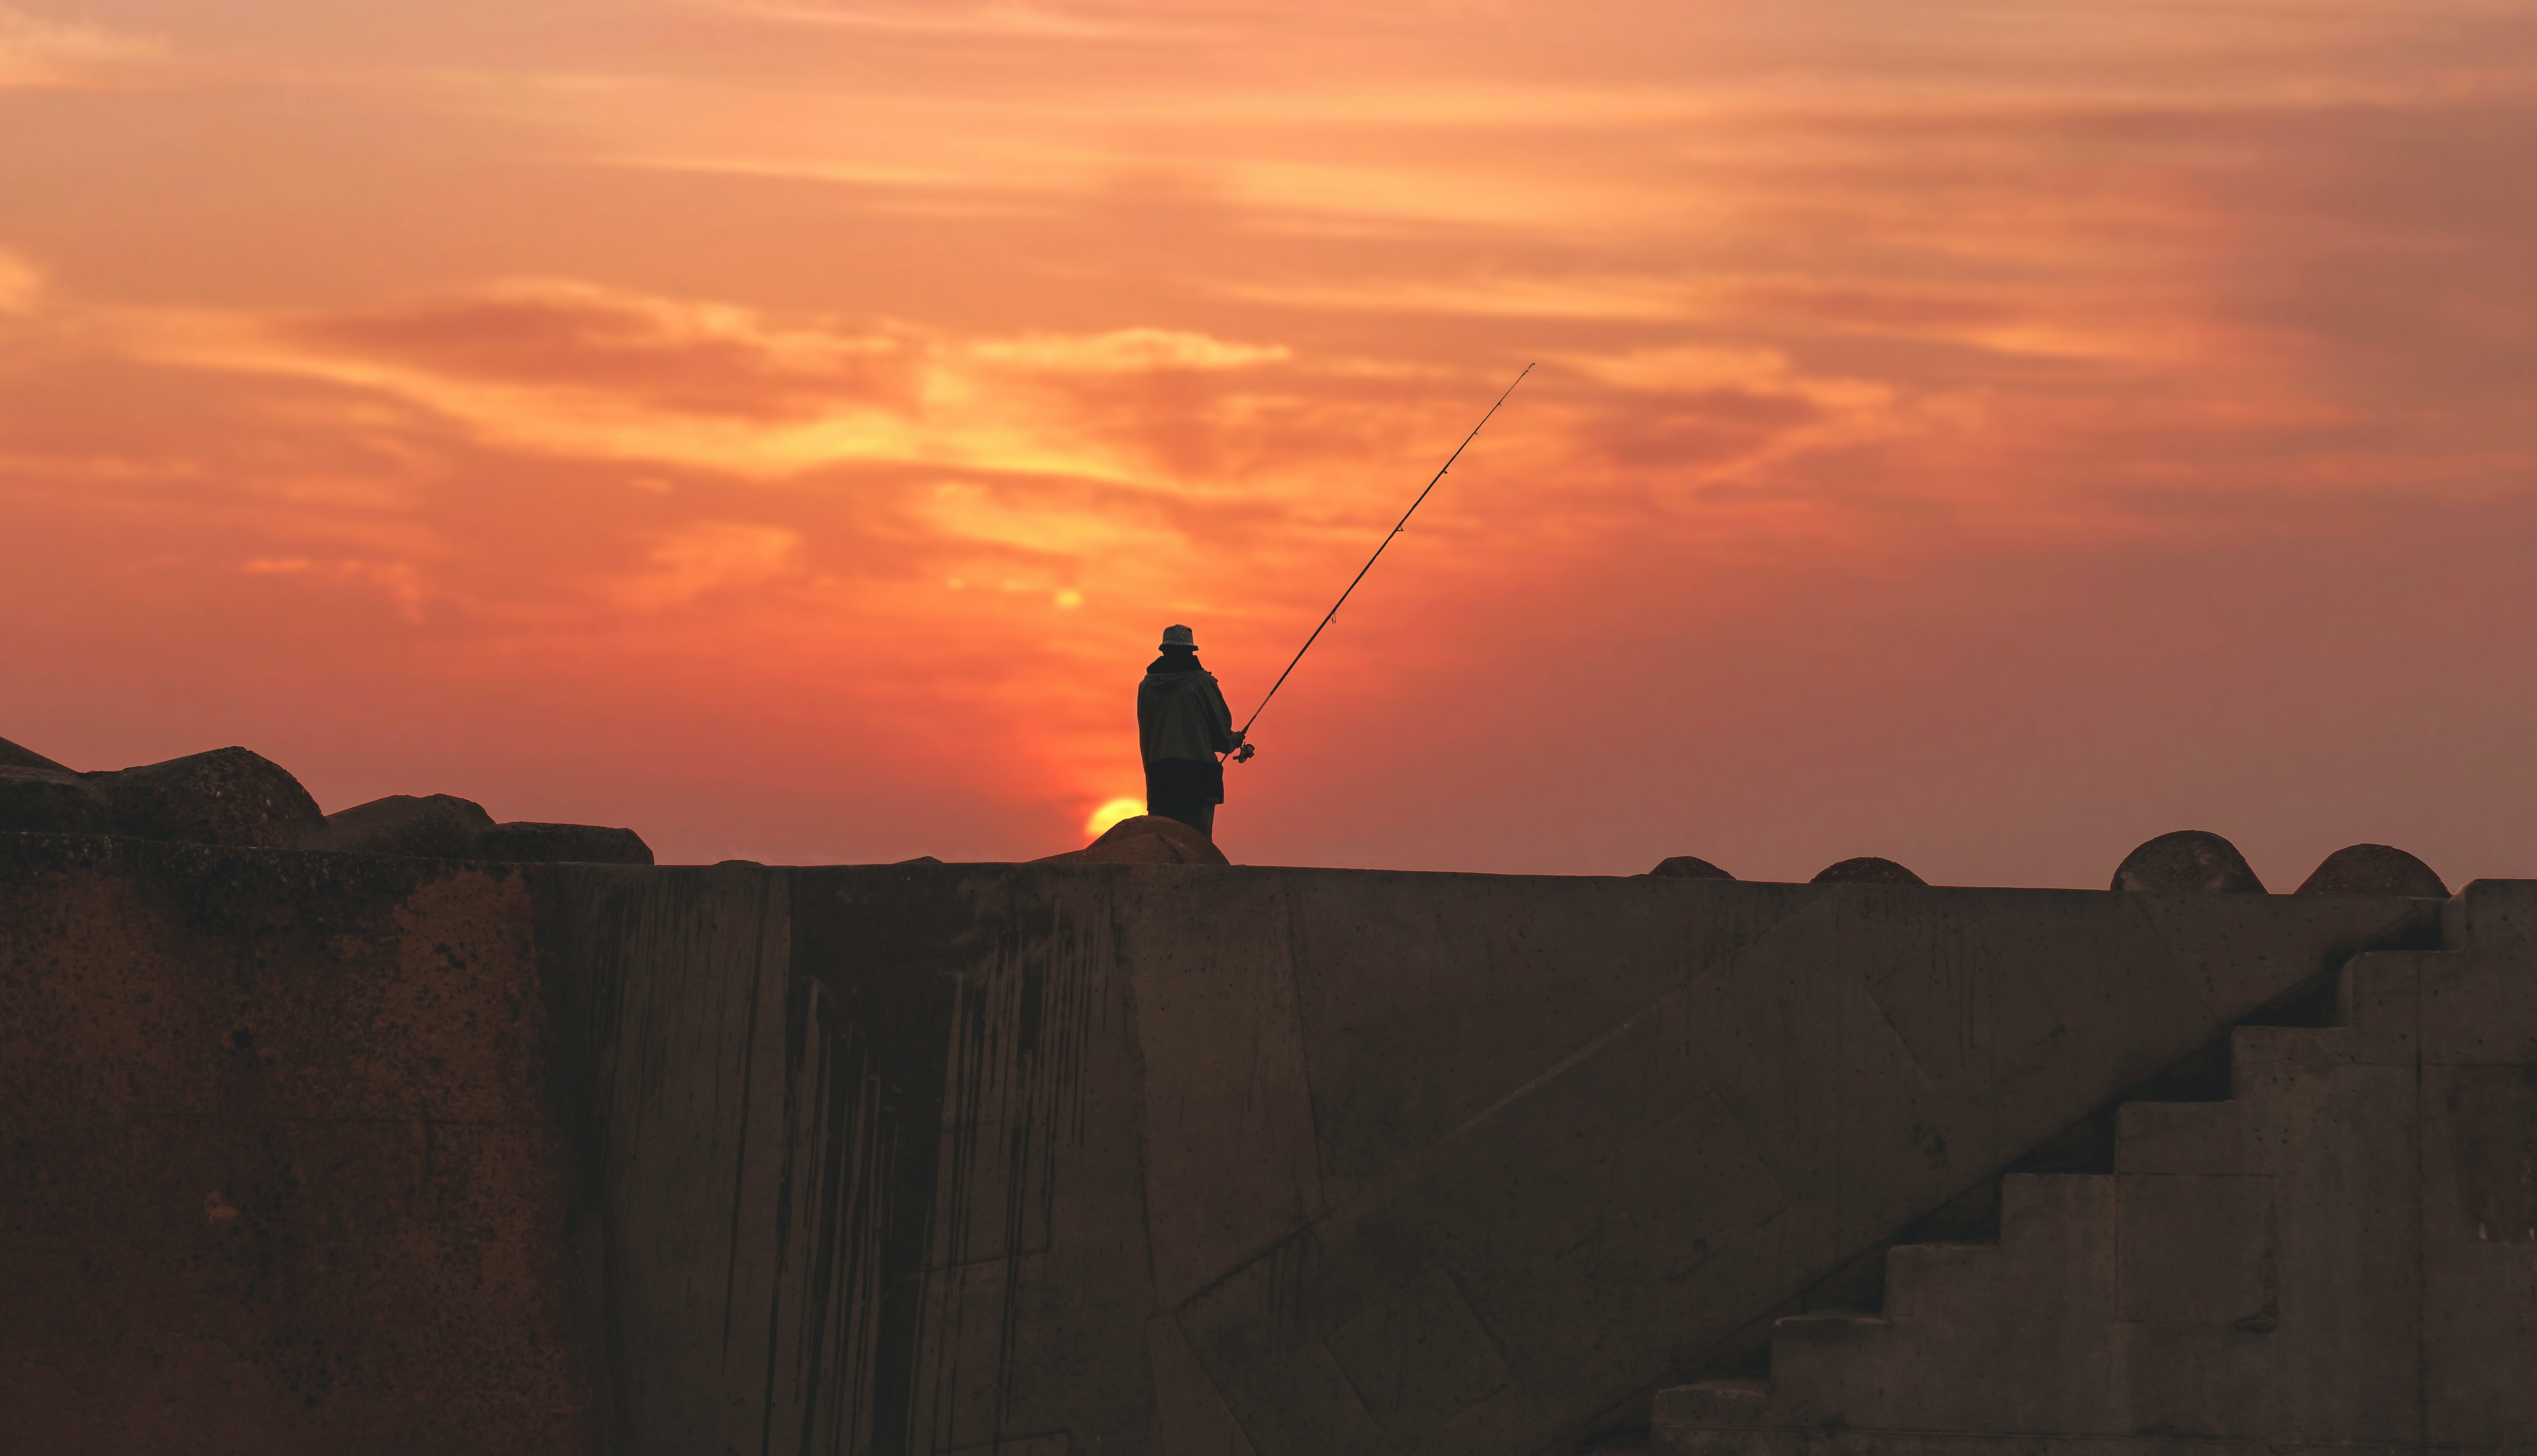 A silhouette of a fisherman standing atop a wall in Asilah, Morocco during sunset